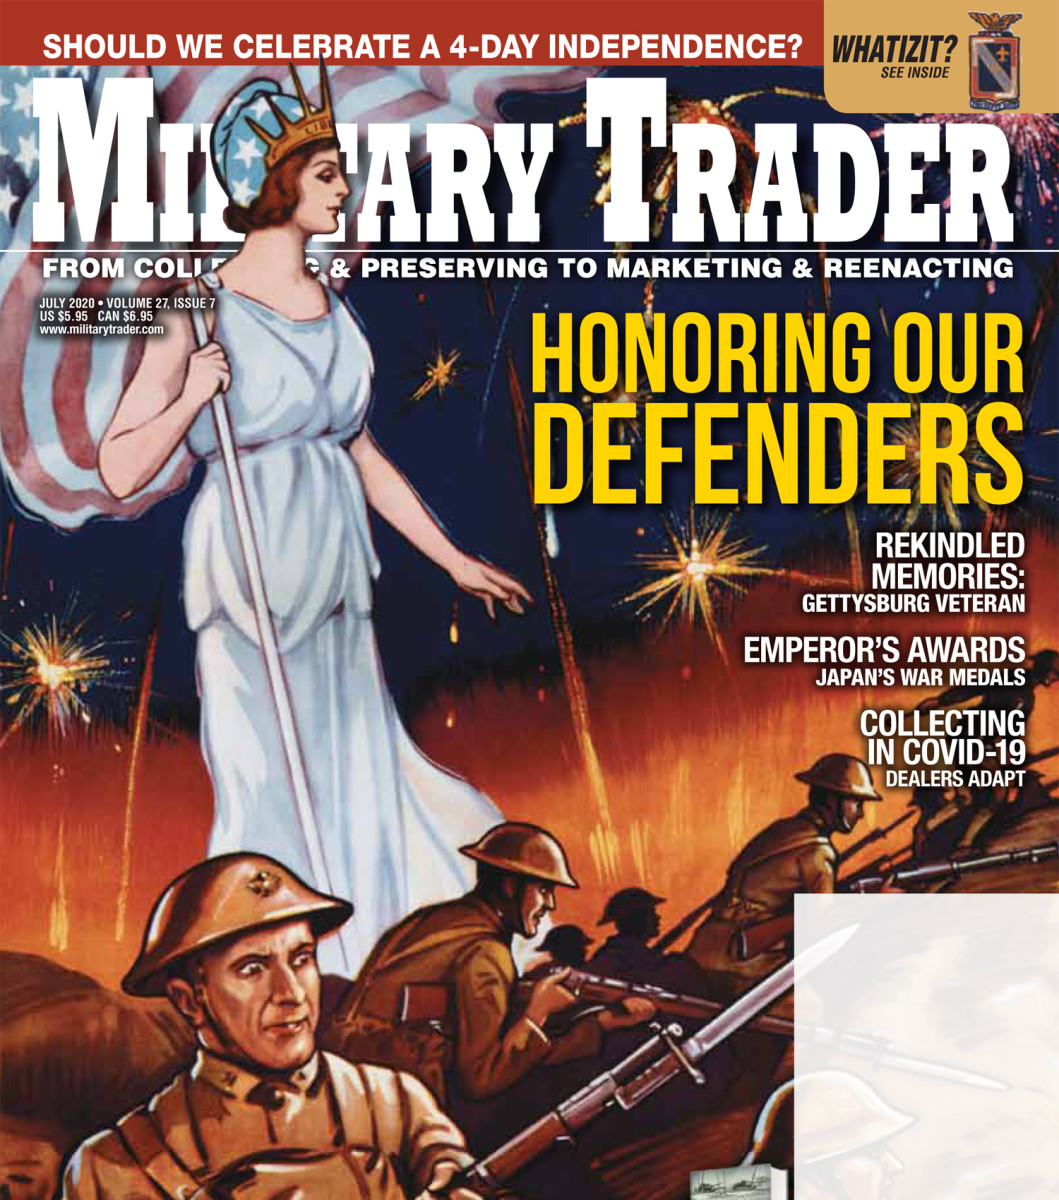 Subscribe to MILITARY TRADER today!